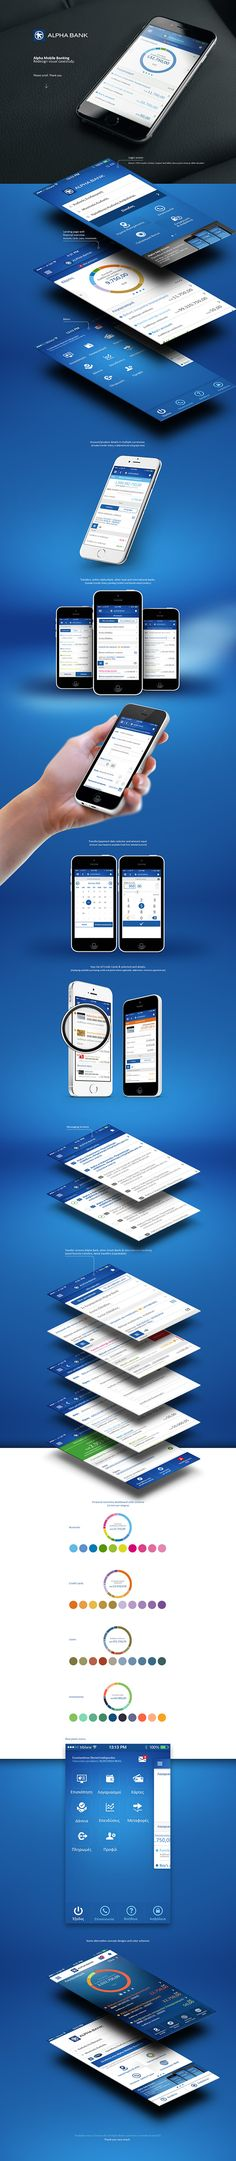 Alpha Mobile Banking.